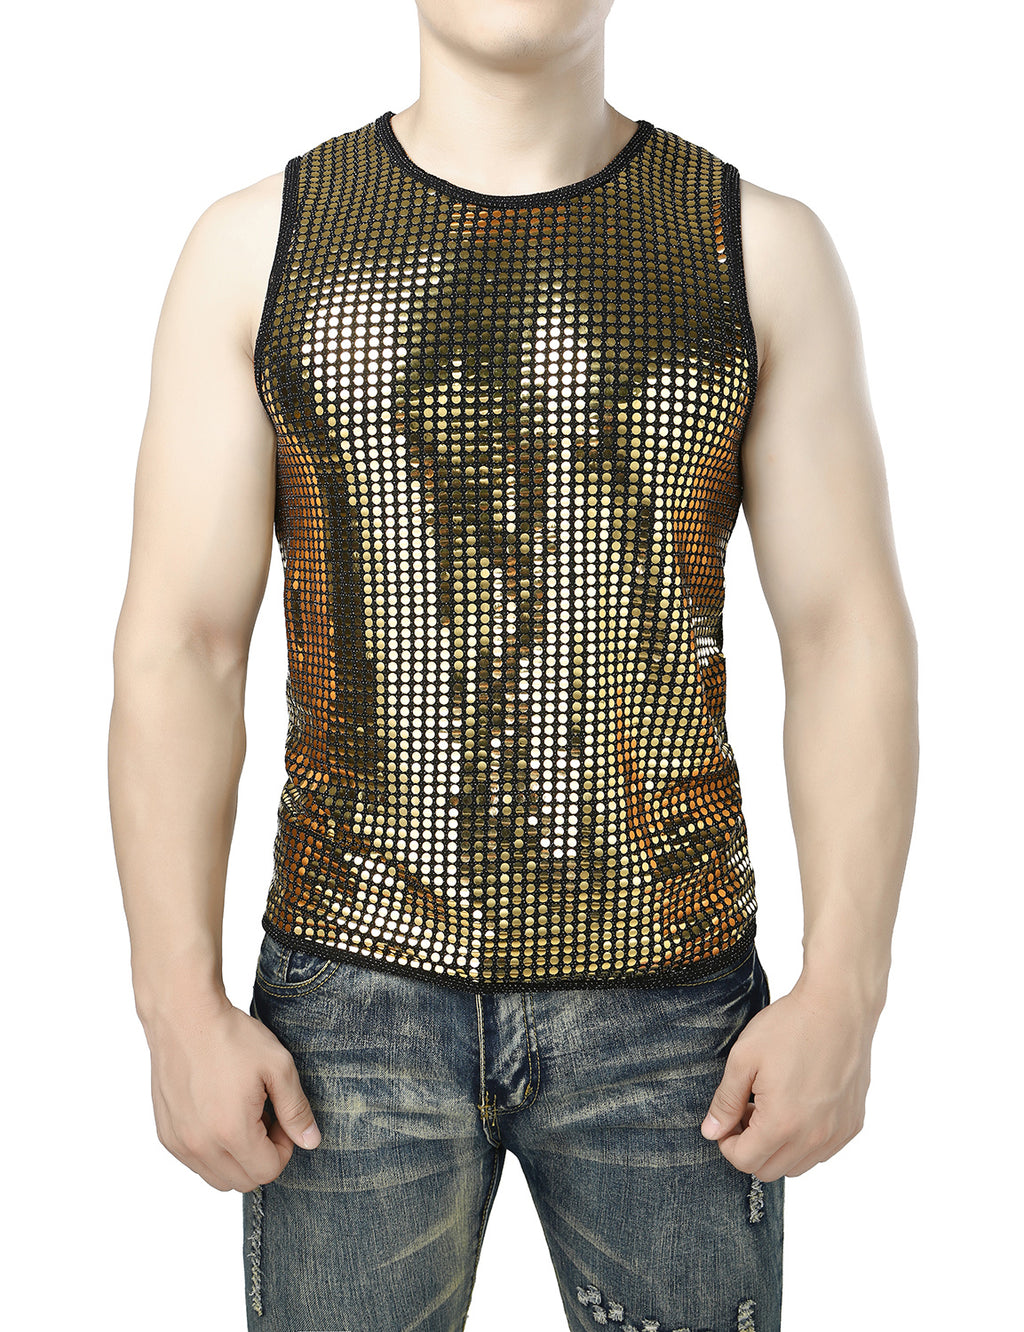 JOGAL Men's Mesh Fishnet Fitted Sleeveless Muscle Top Gold Sequins Shirts(Circle)